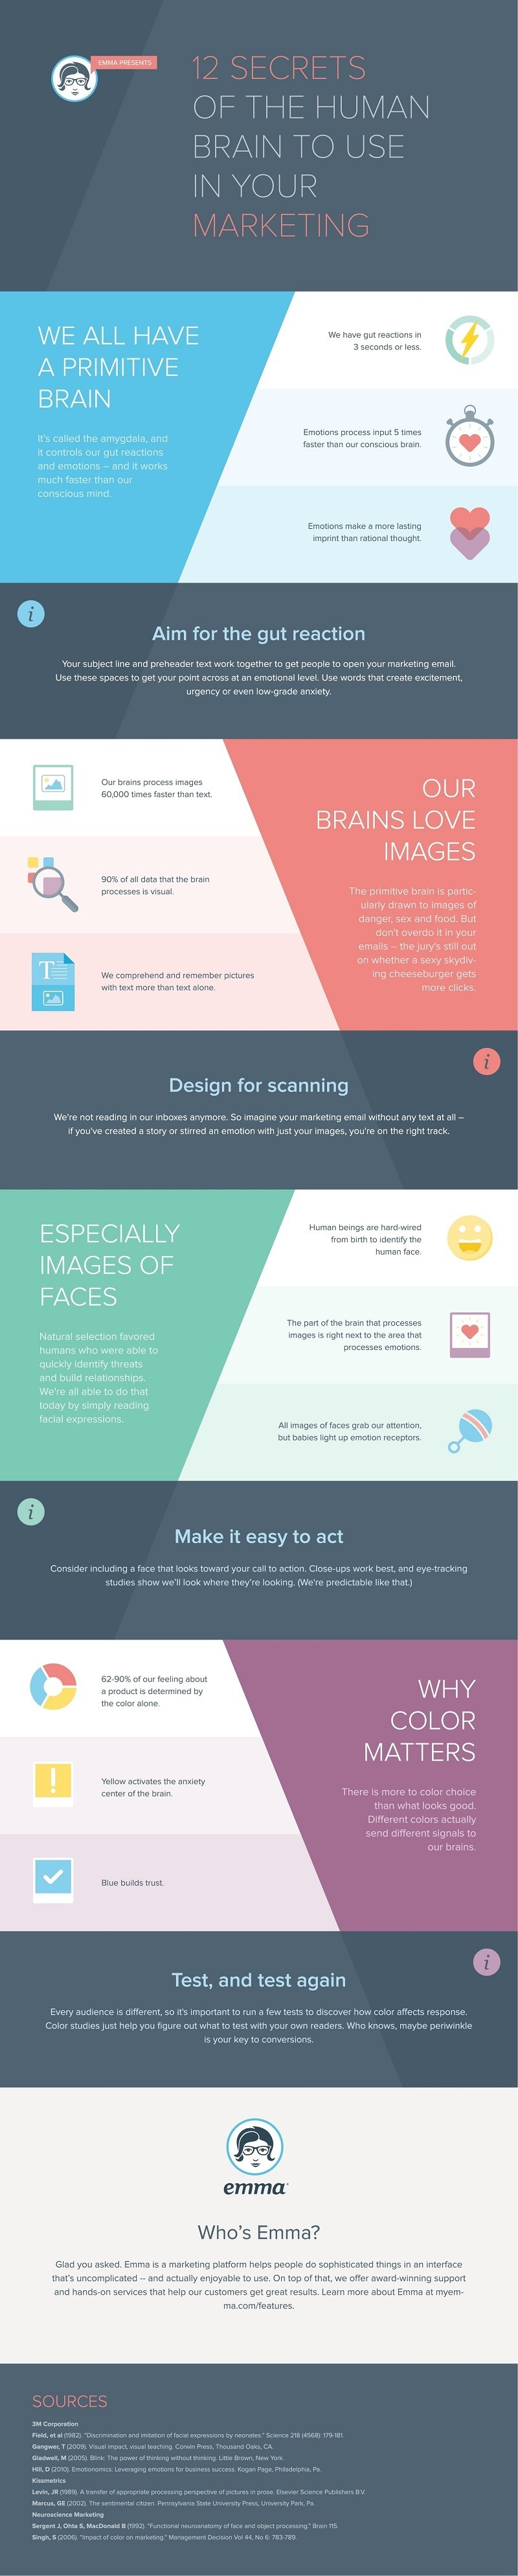 Infographic 12 Secrets of the Human Brain to Use in Your Marketing